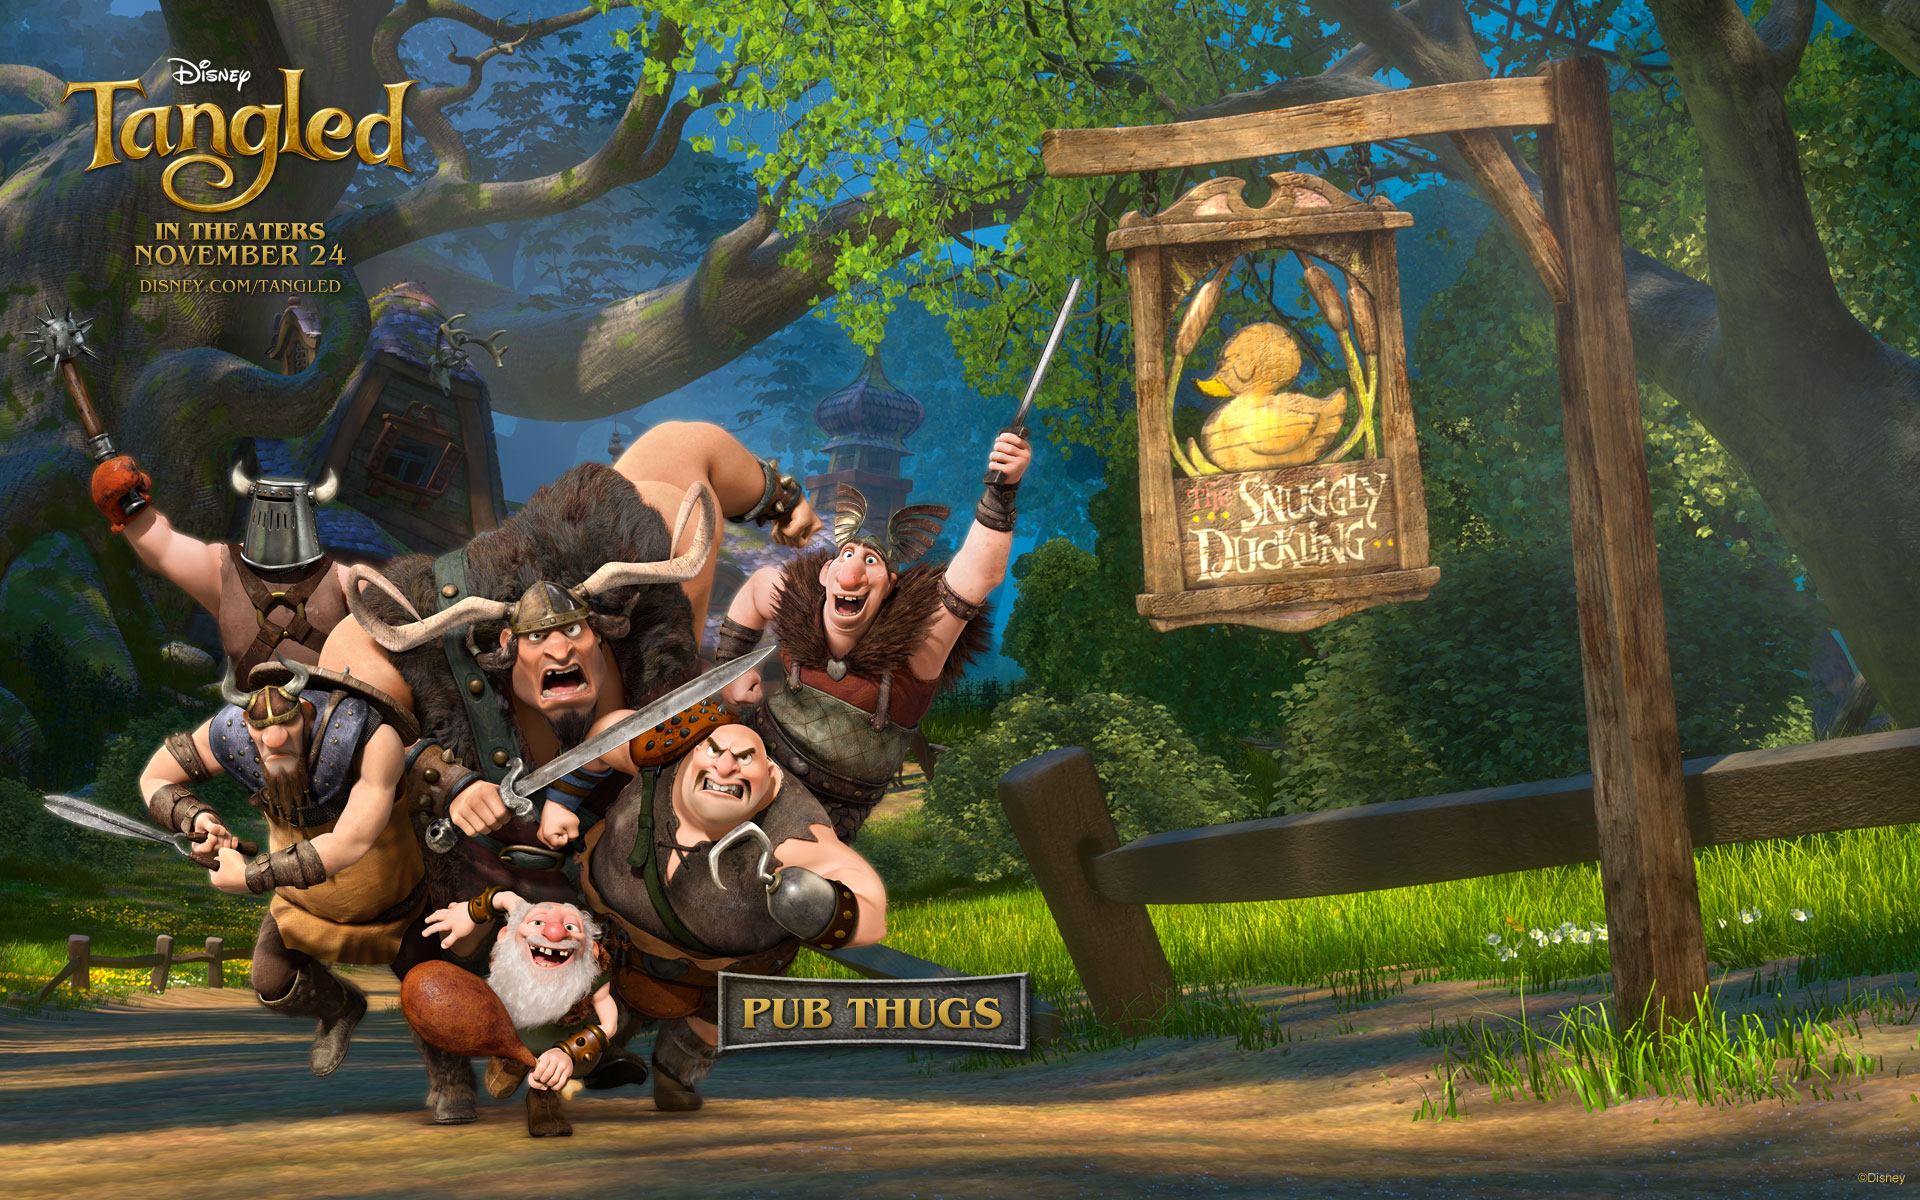 Pub Thugs from Tangled wallpaper   Click picture for high resolution 1920x1200